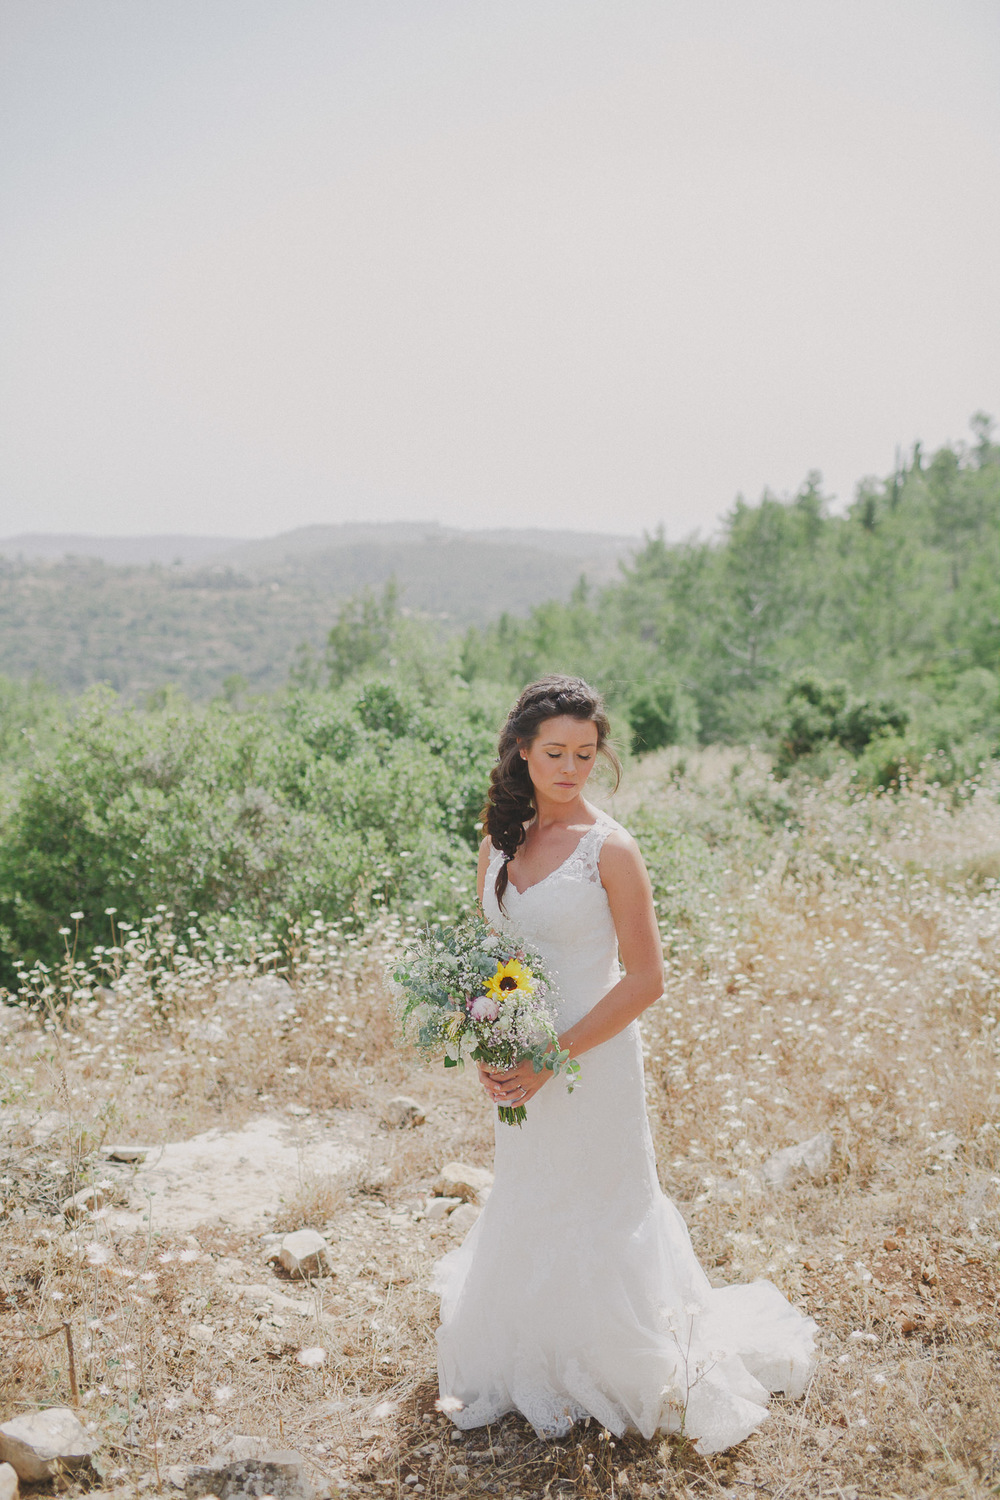 Countryside Wedding - Liron Erel - Echoes & Wildhearts 0039.jpg